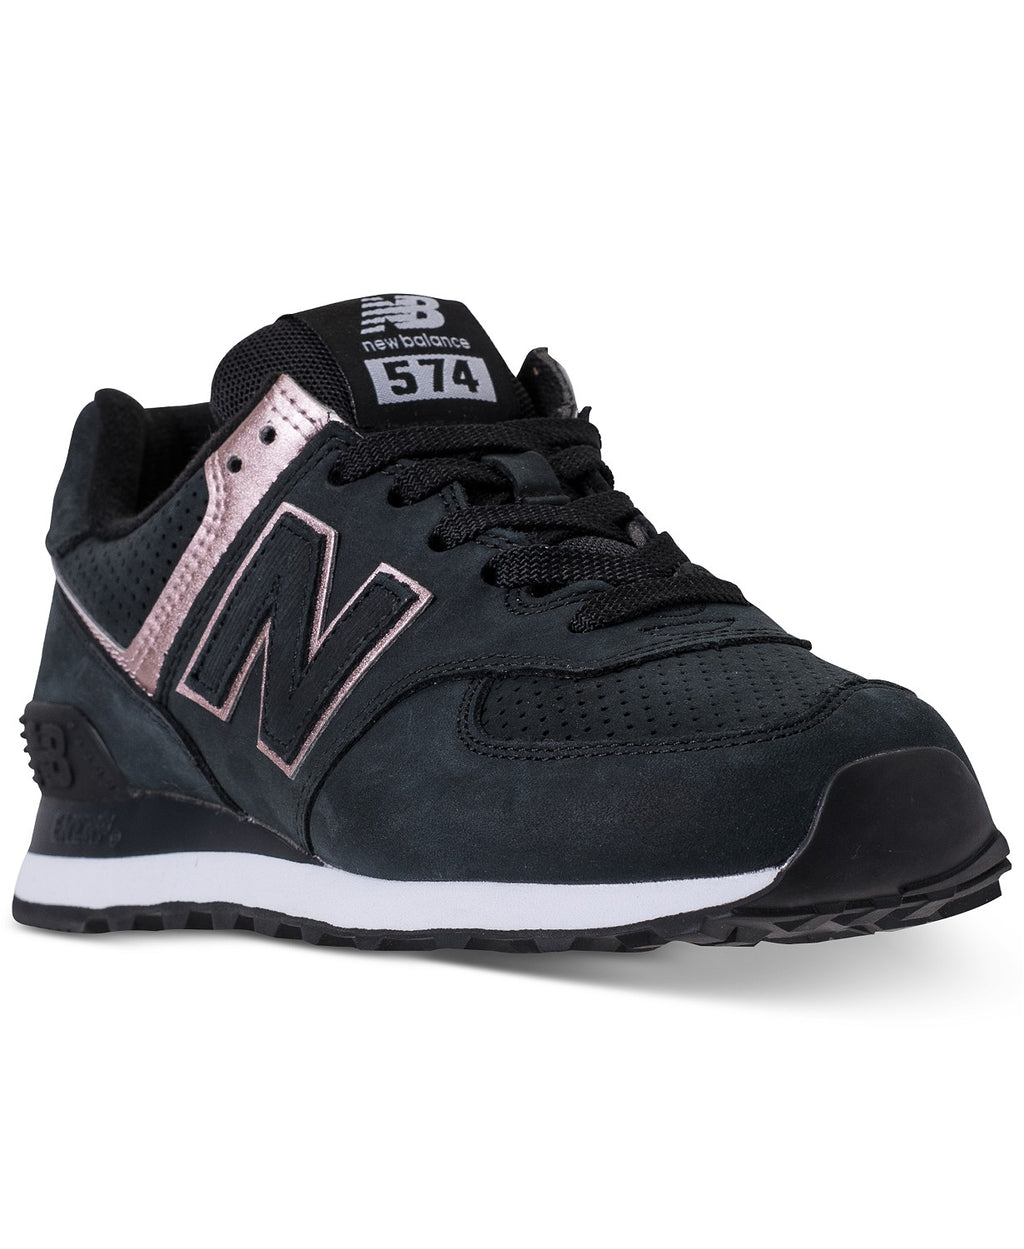 New Balance Women's 574 Rose Gold /black Sneakers